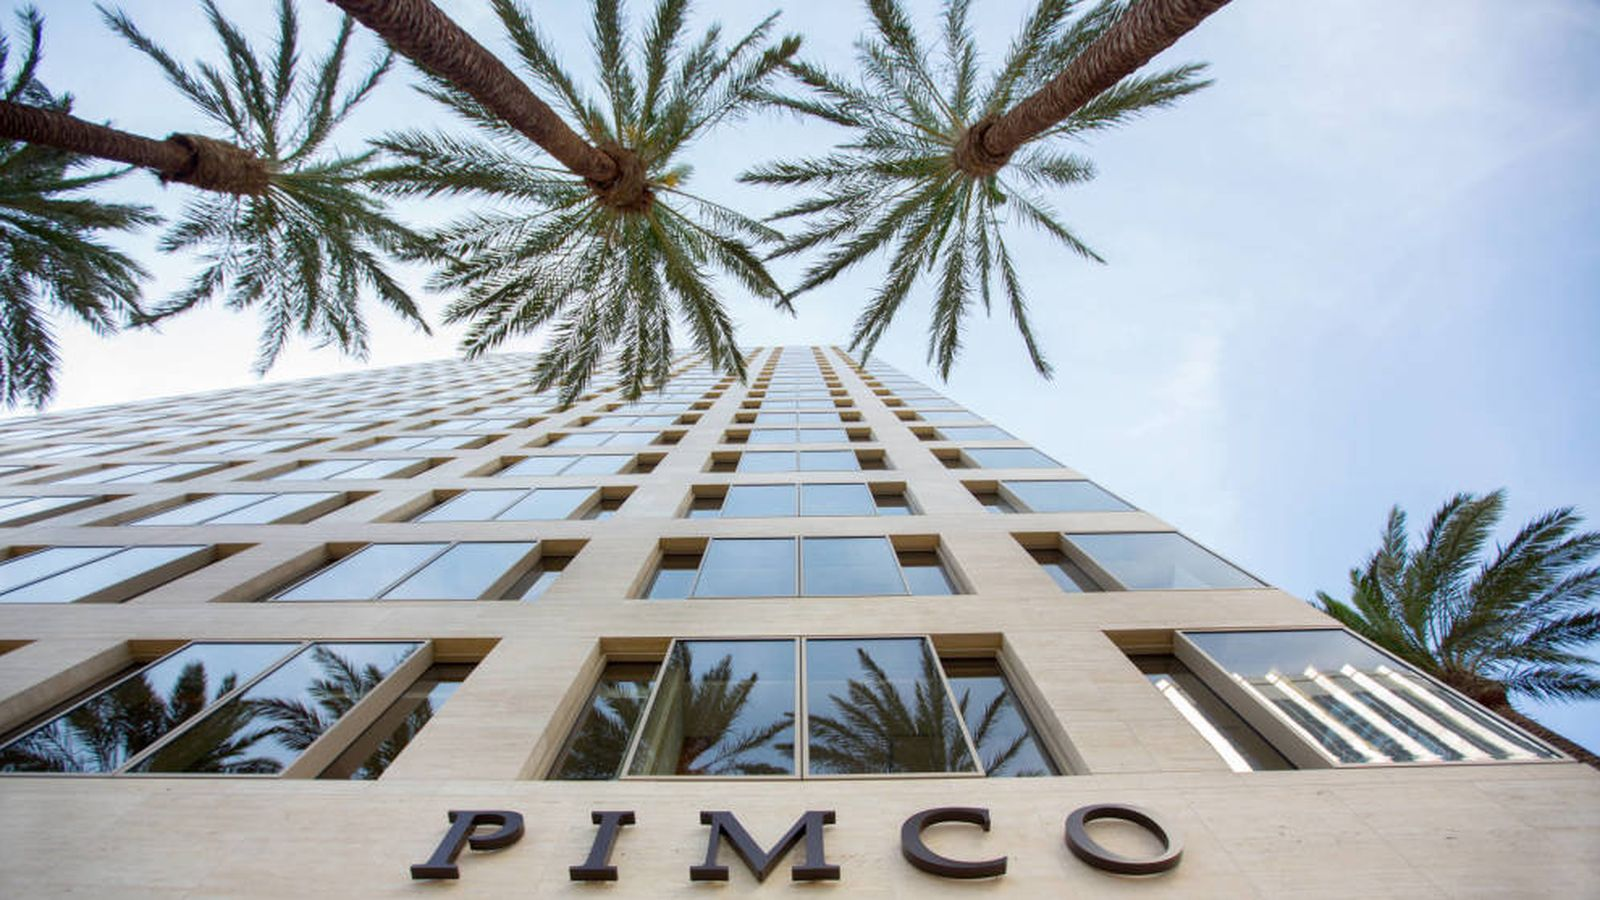 Foto: Sede central de Pimco en Newport Beach, California. (Pimco)